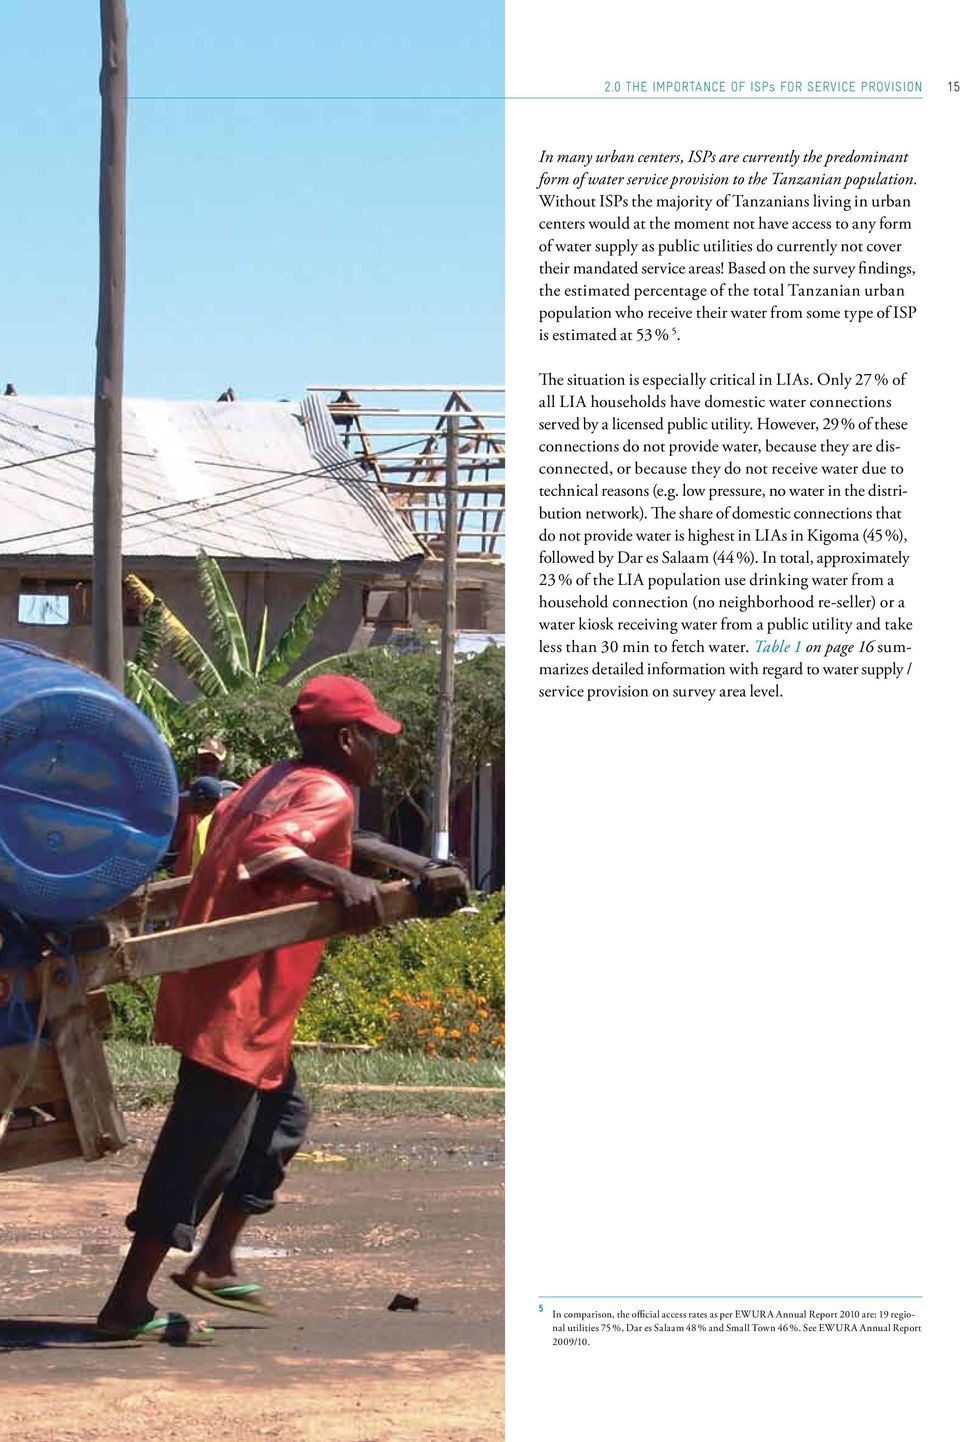 Based on the survey findings, the estimated percentage of the total Tanzanian urban population who receive their water from some type of ISP is estimated at 53 % 5.